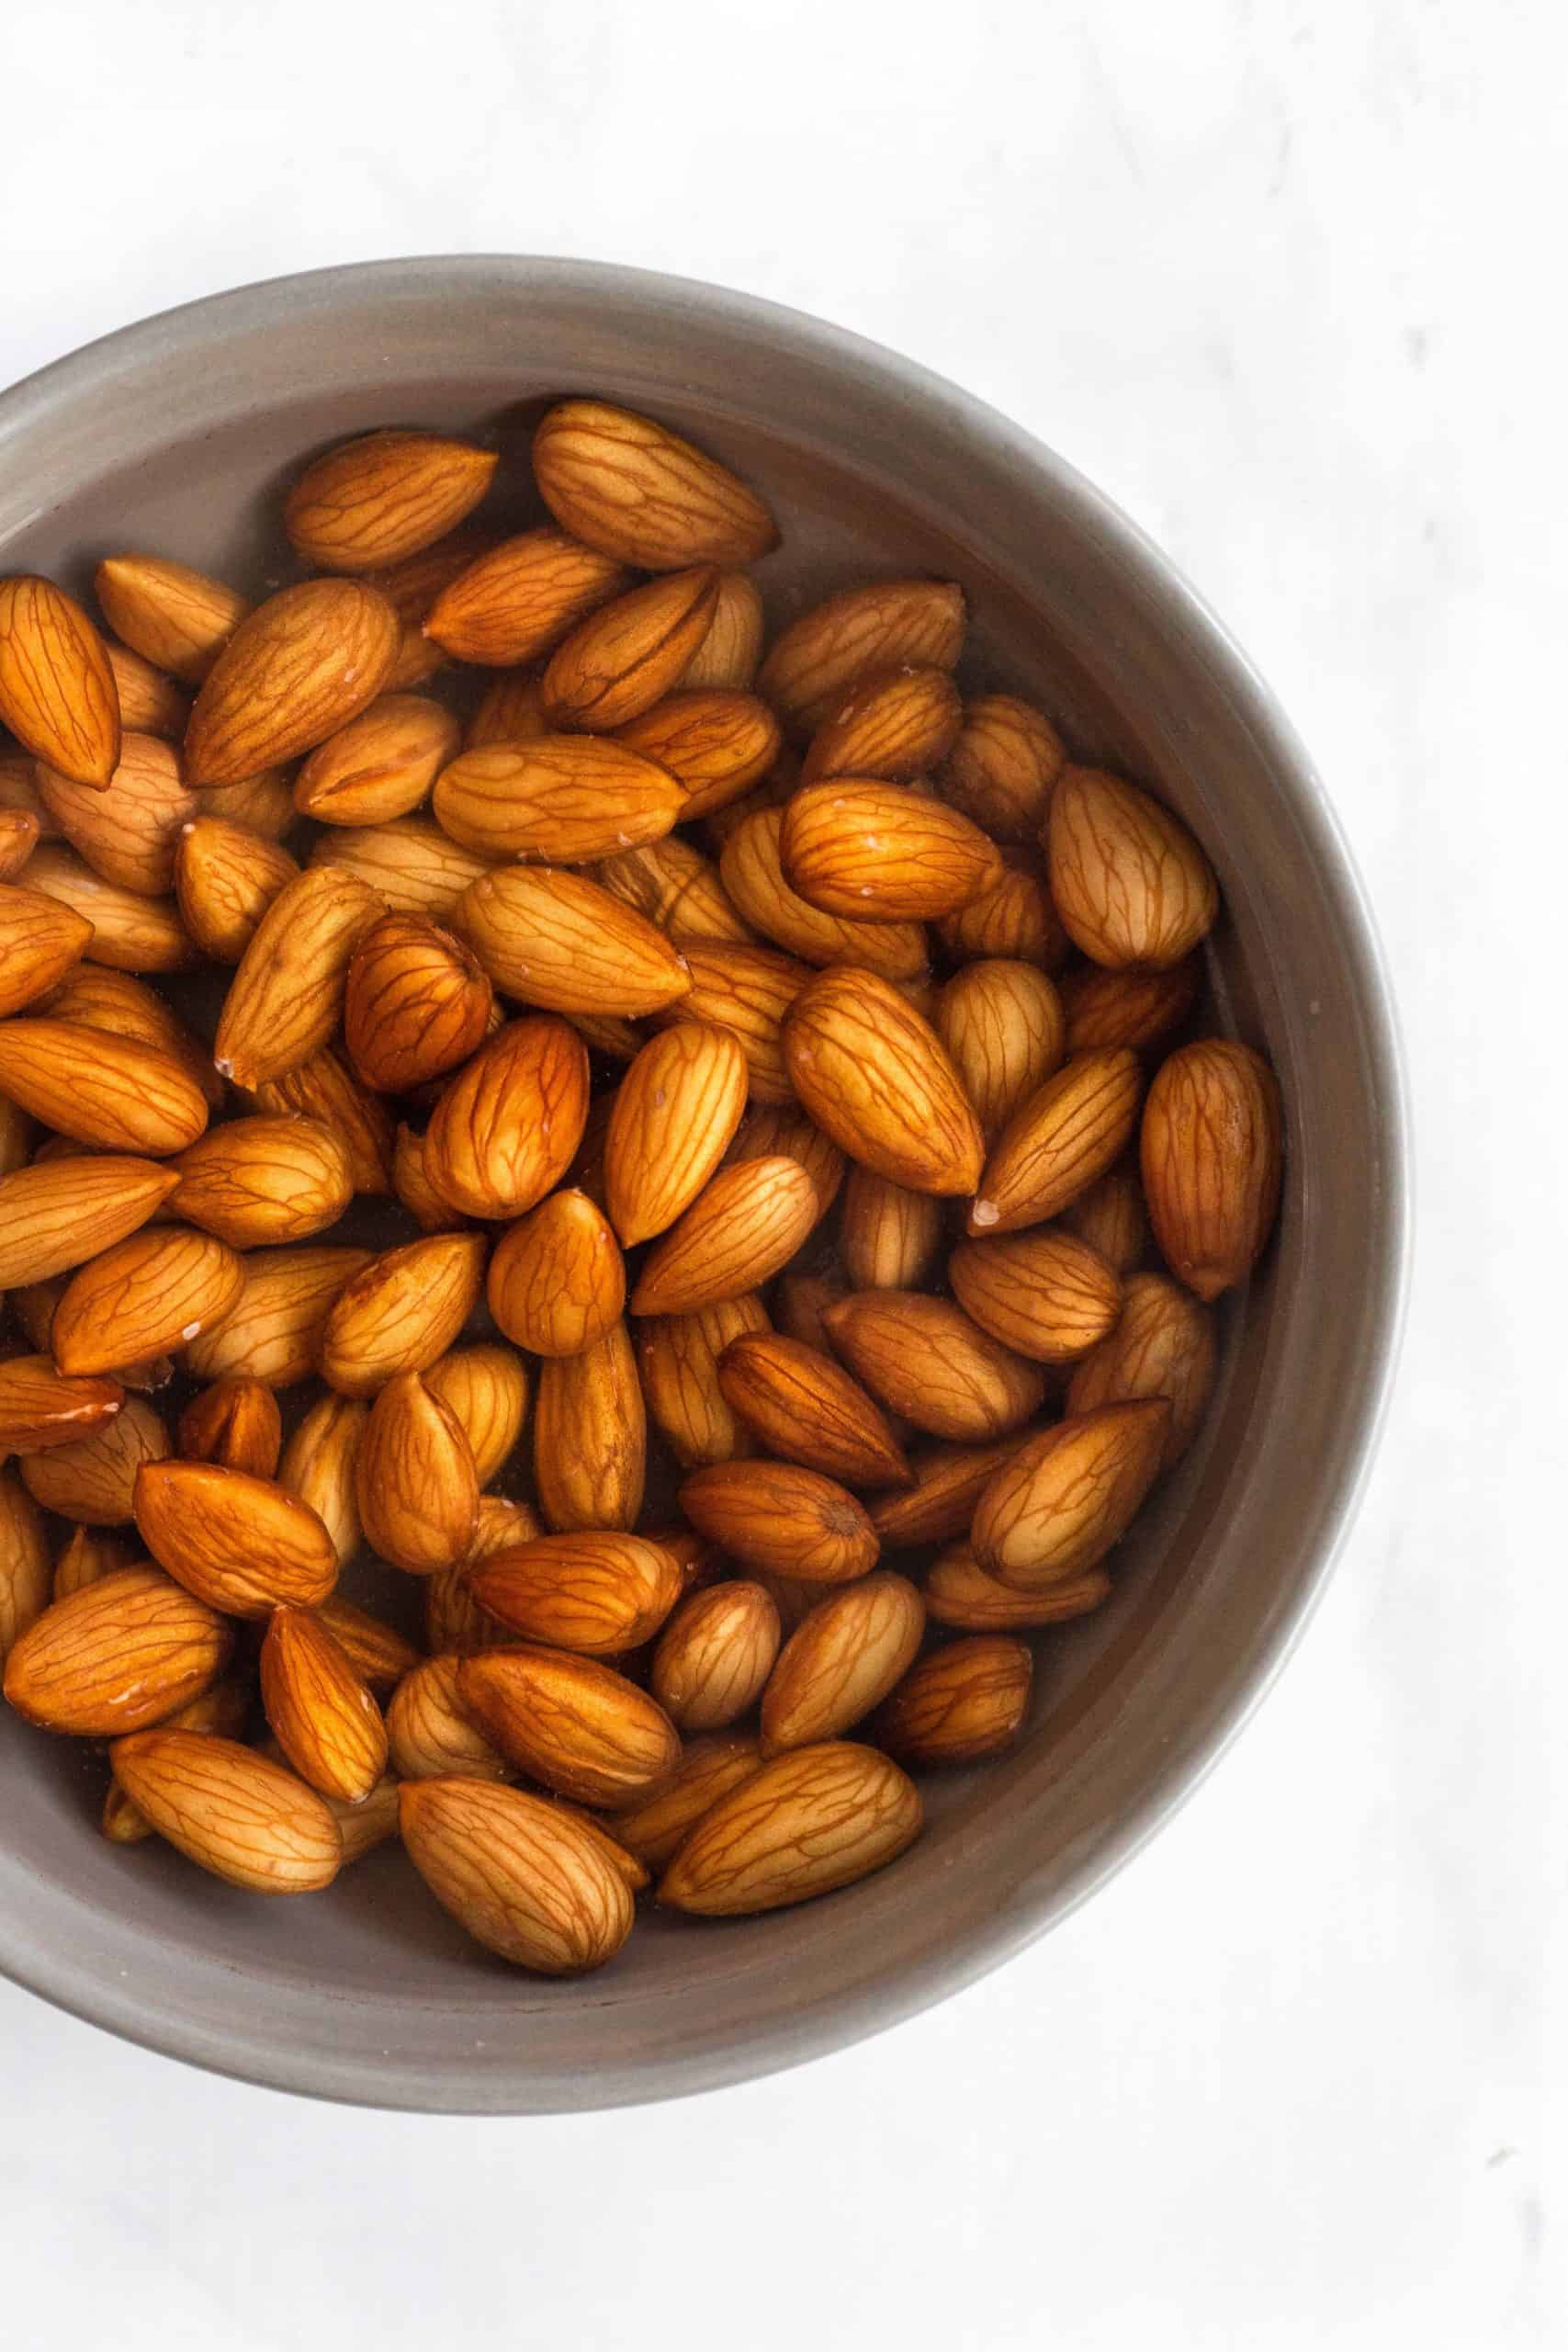 Raw almonds soaking in a bowl of water.